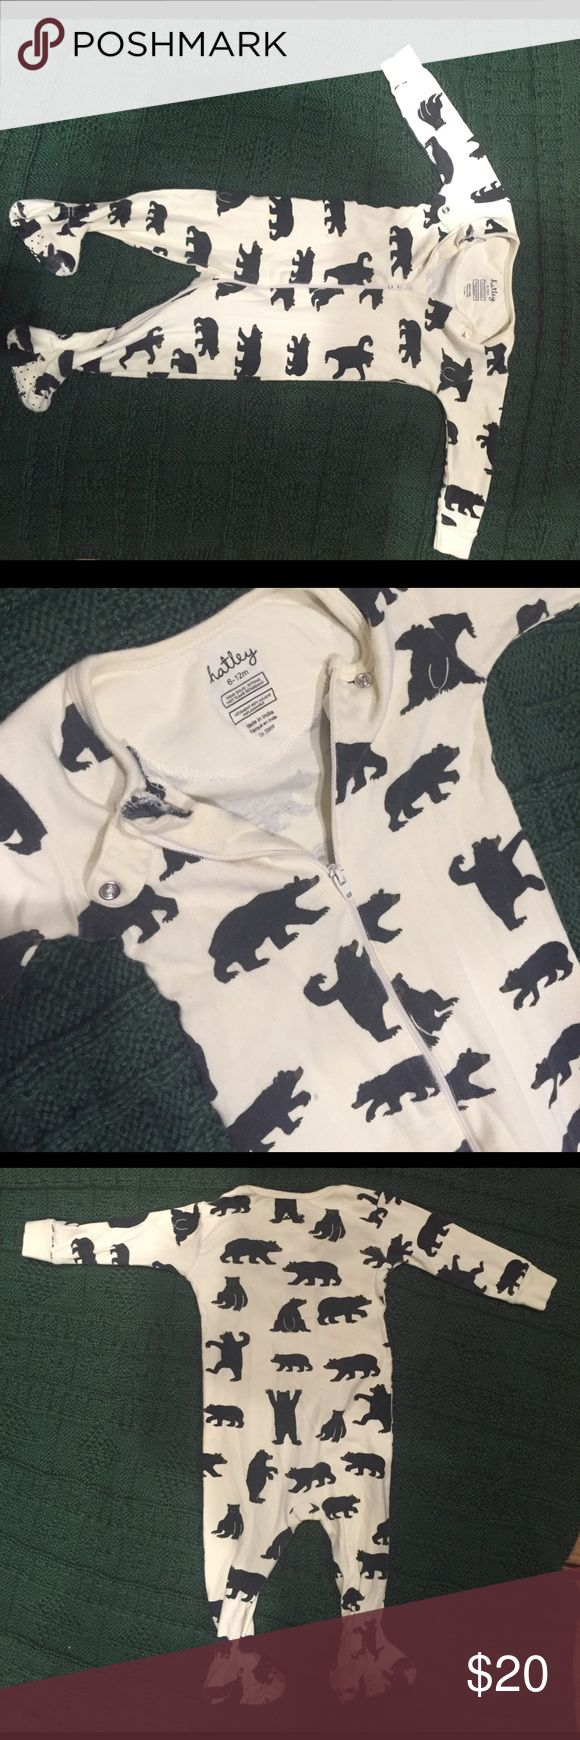 Hatley sleeper Size 6-12 month, super soft and great condition. Loved this print and sad to see it go. One of my fav brands for the kids.  Features: Eco-friendly 100% organic cotton Made to be snug fitting Full length zipper closure Snap tab at neckline Contrast neckband and cuffs Non-skid soles Machine washable  100% organic cotton. Hatley Pajamas